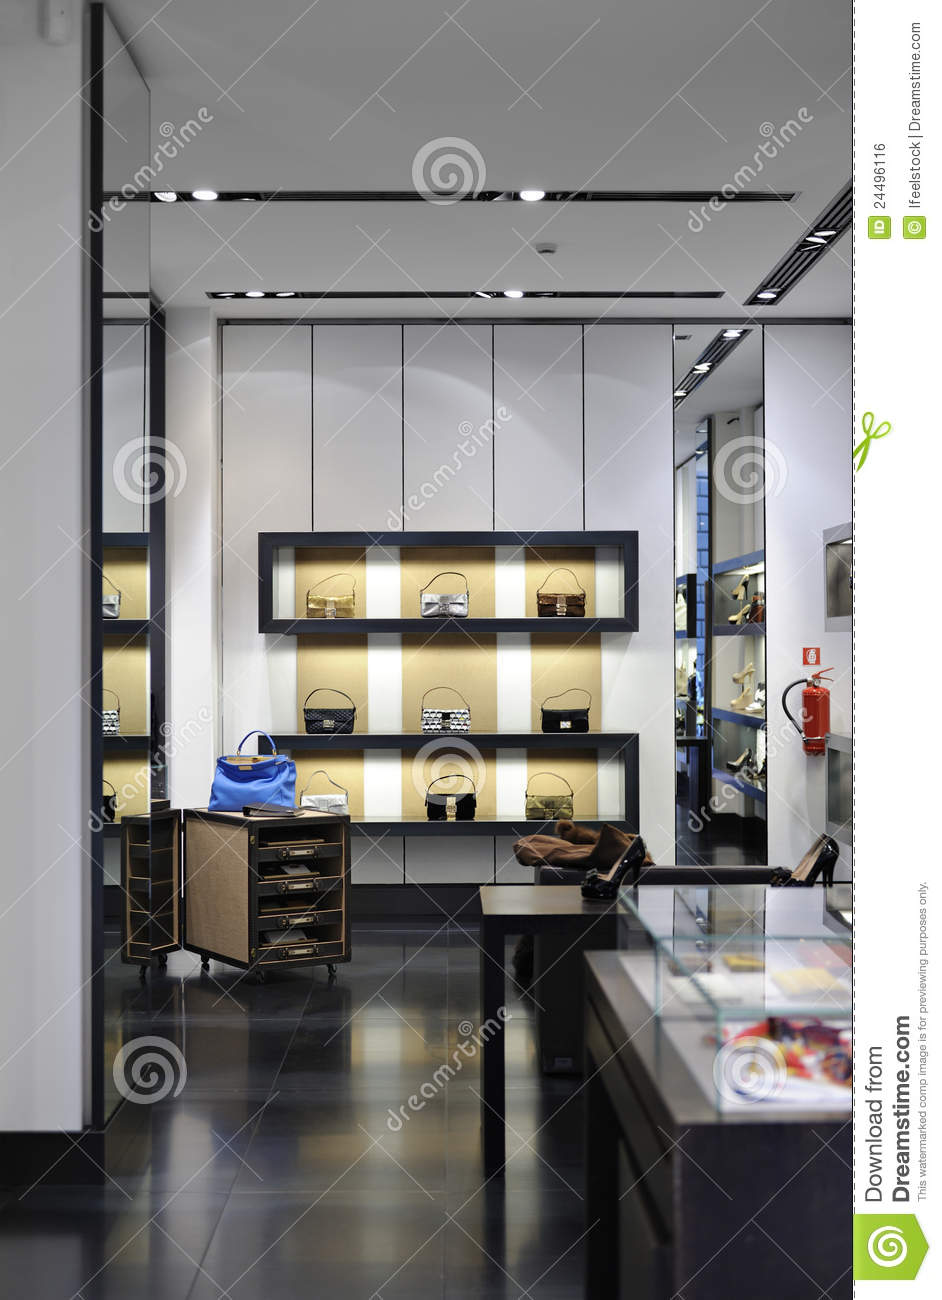 Interior Of A Modern Boutique Store Royalty Free Stock  : interior modern boutique store 24496116 from www.dreamstime.com size 942 x 1300 jpeg 118kB